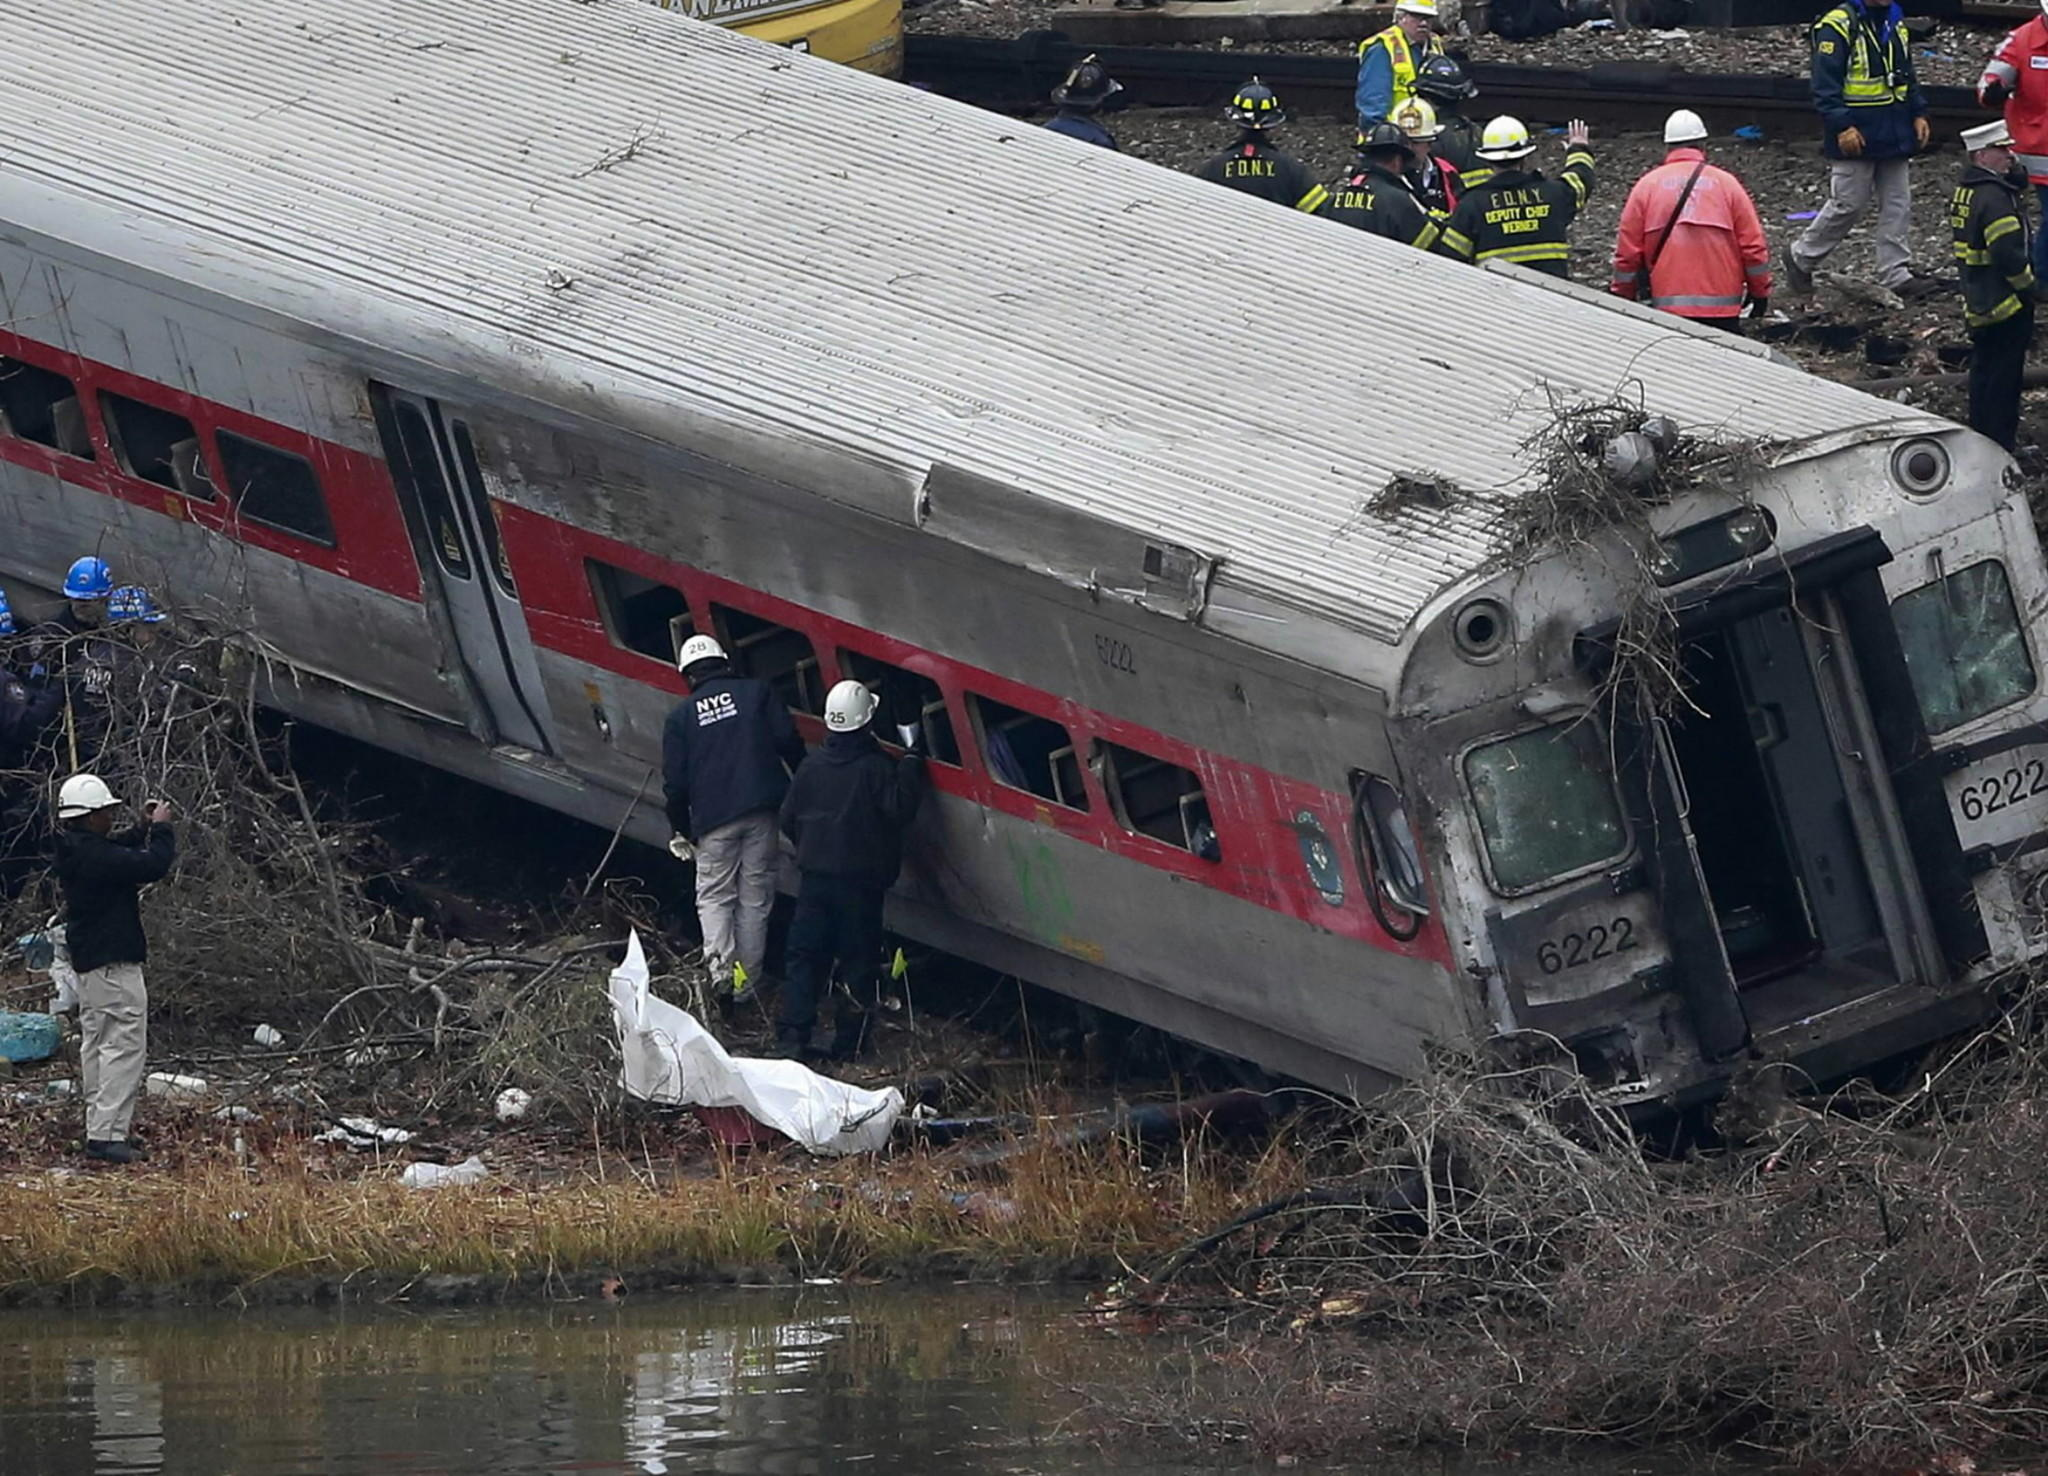 Emergency and track workers look at a derailed Metro-North train in the Bronx Dec. 2, the day after it crashed killing four people and injuring 11 critically. Inquiries have begun into the railroads operating procedures.